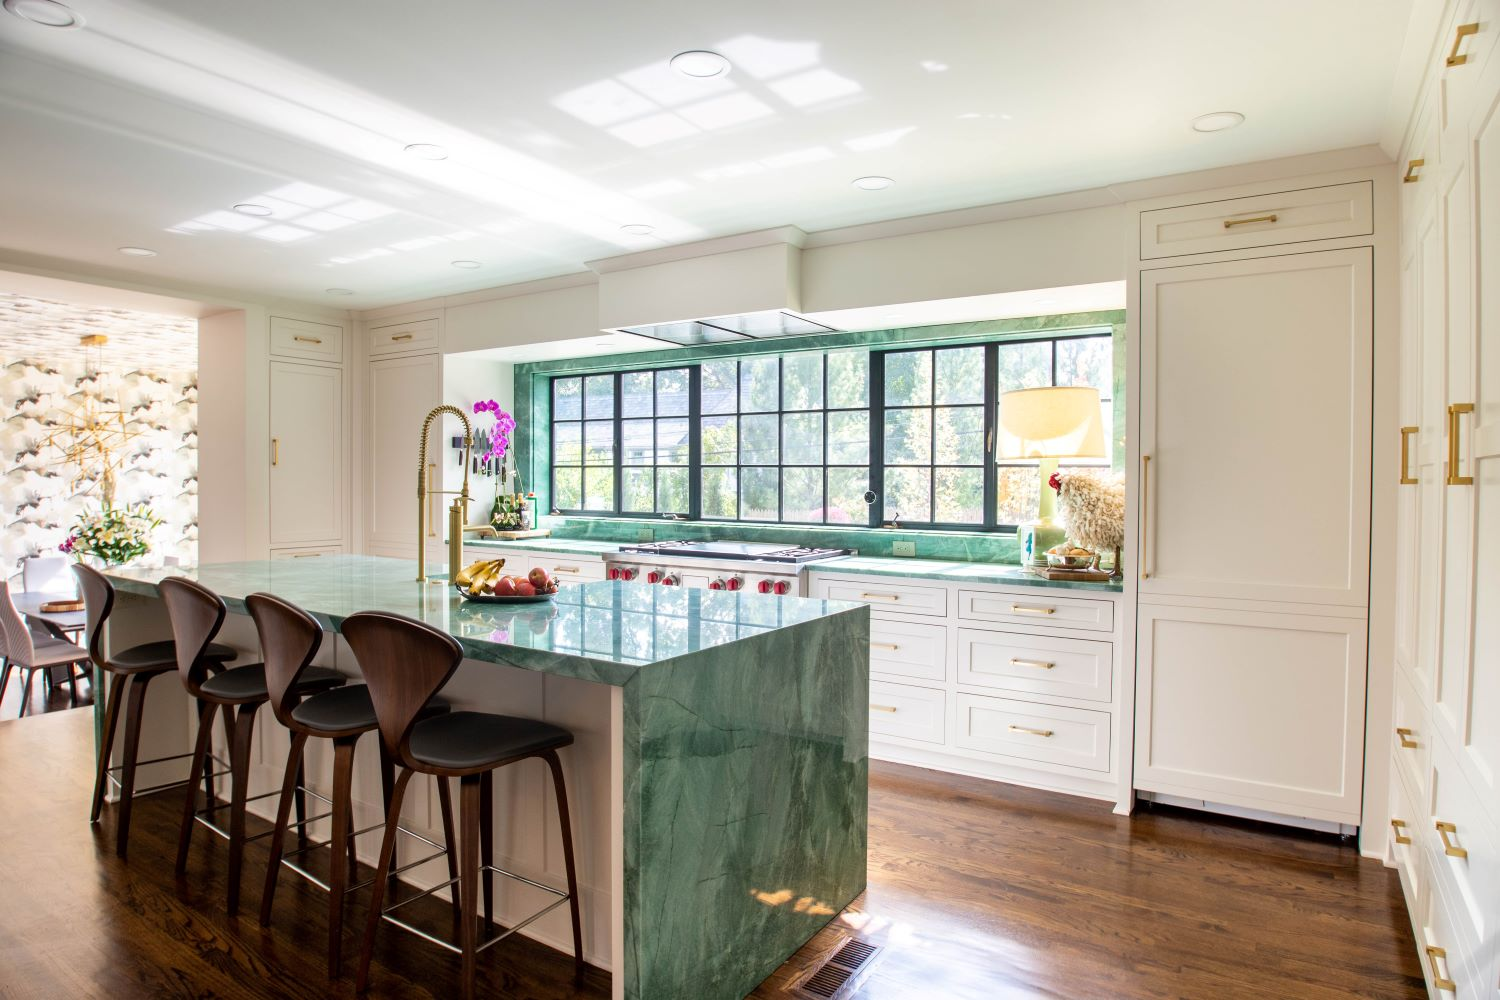 Best in Show by Scovell Remodeling